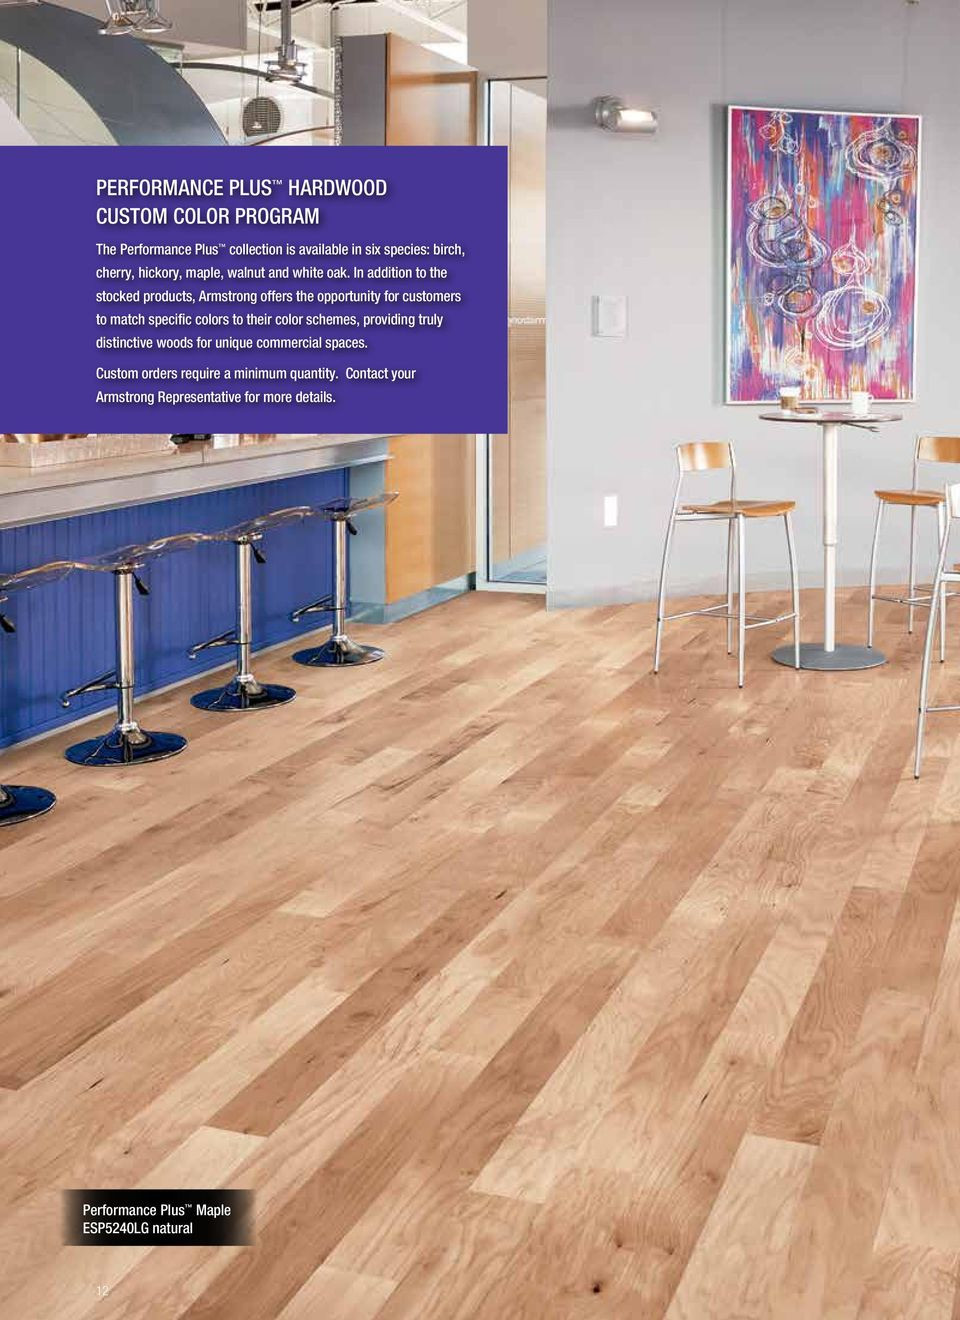 birch vs hickory hardwood flooring of performance plus midtown pdf for in addition to the stocked products armstrong offers the opportunity for customers to match specific